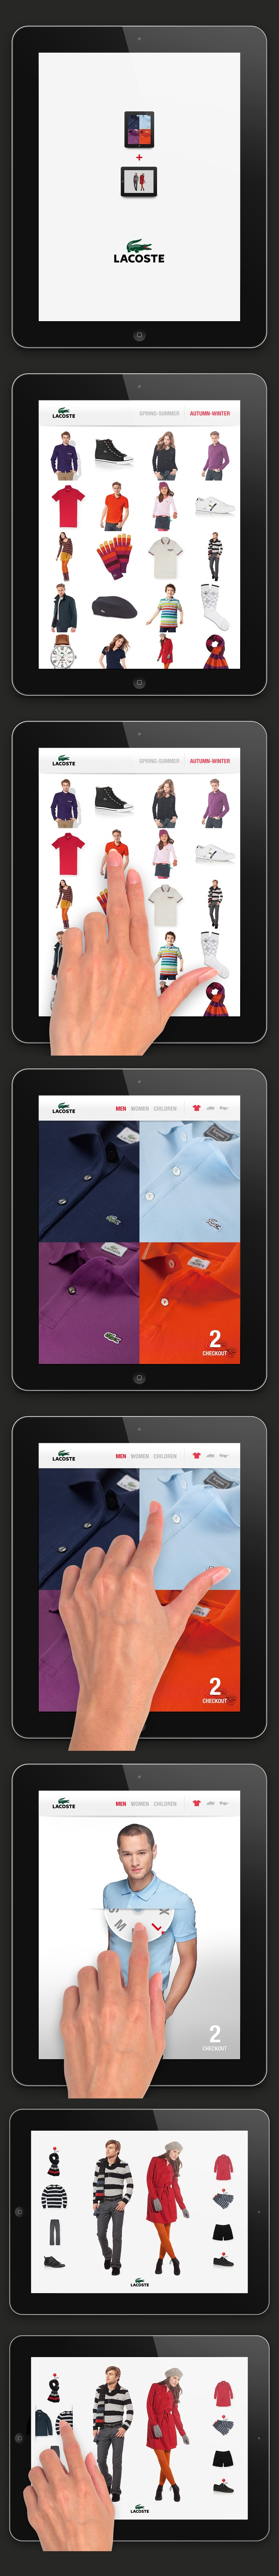 Lacoste iPad app / by Pierrick Calvez Studio Ltd.